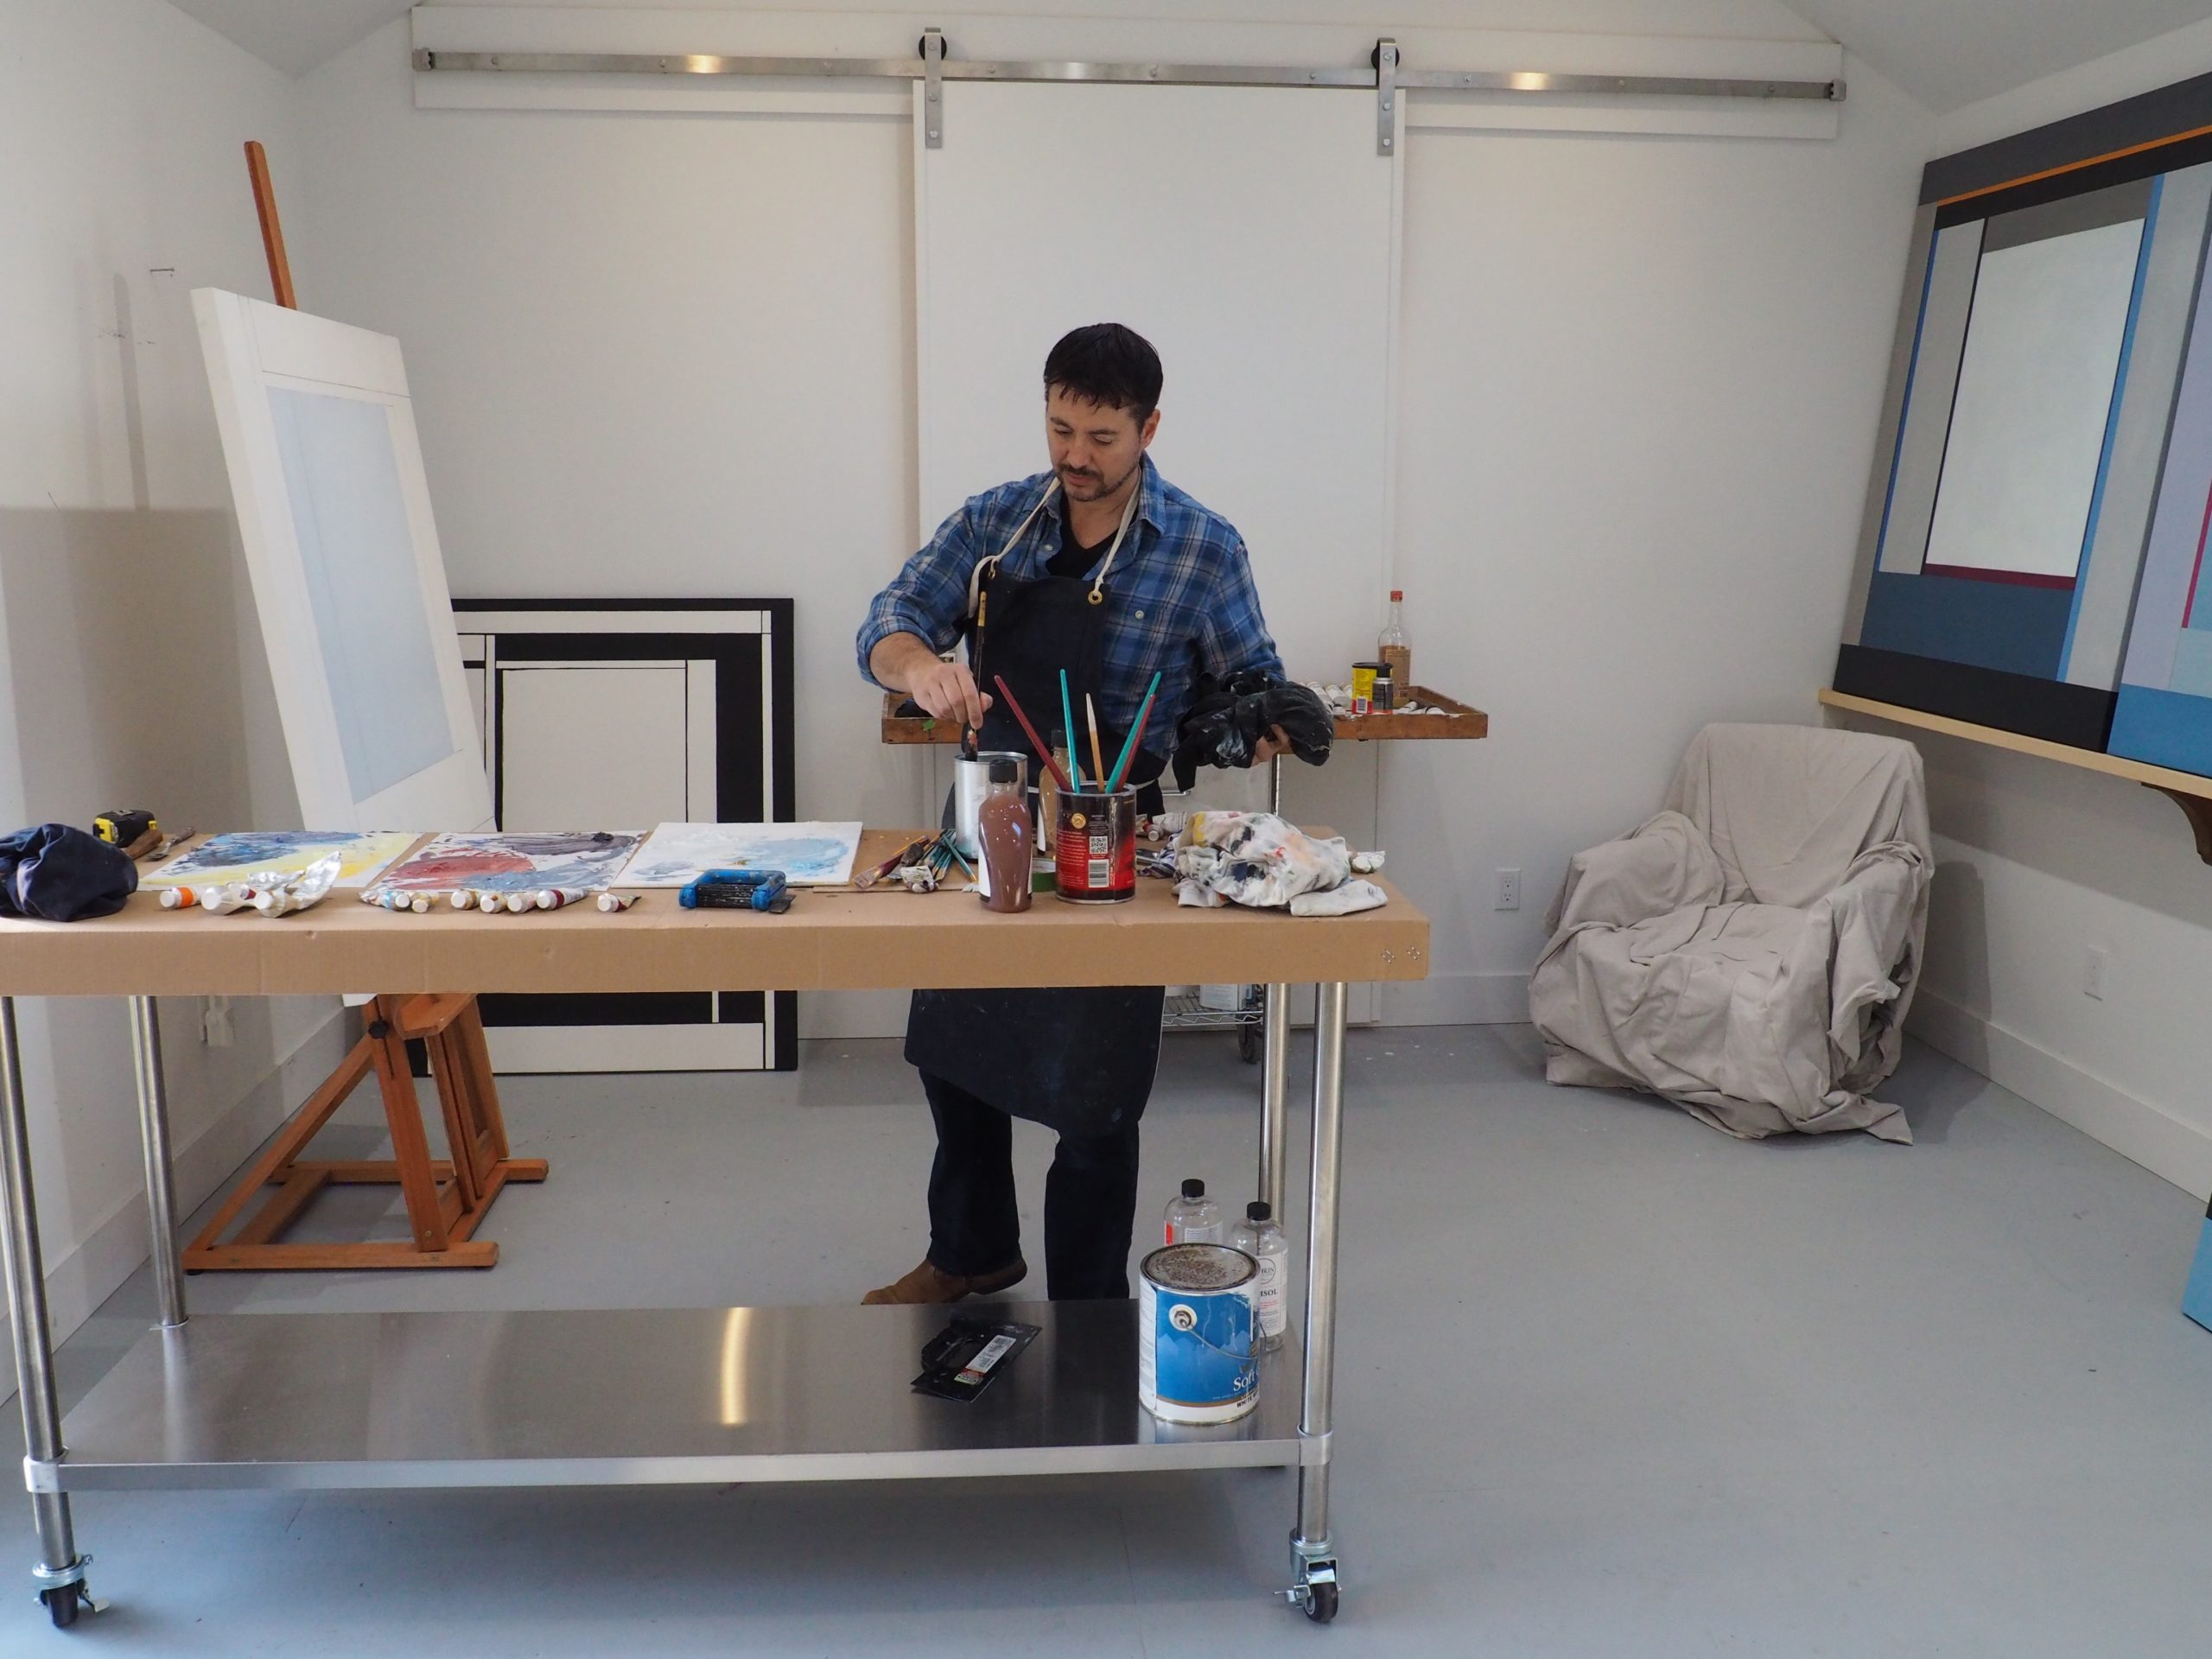 Chris Kelly at work in the studio.